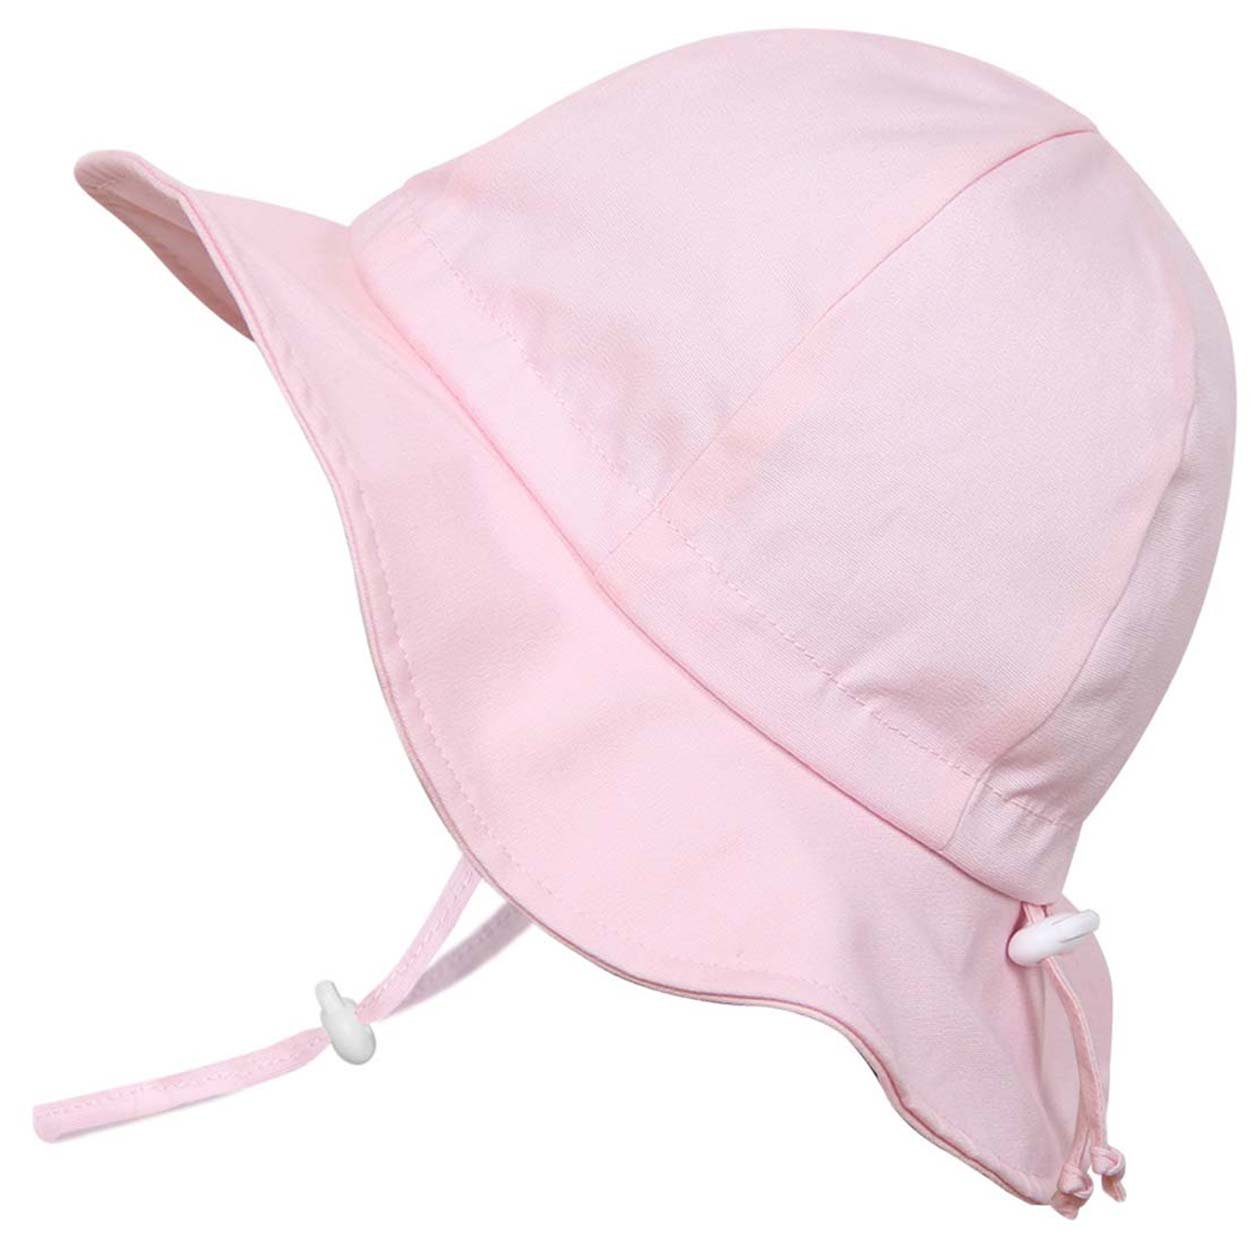 Twinklebelle Toddler Girls Breathable Sun Hat 50 UPF, Adjustable, Stay-On Tie, Foldable (M: 6-30m, Floppy Hat: Pink)